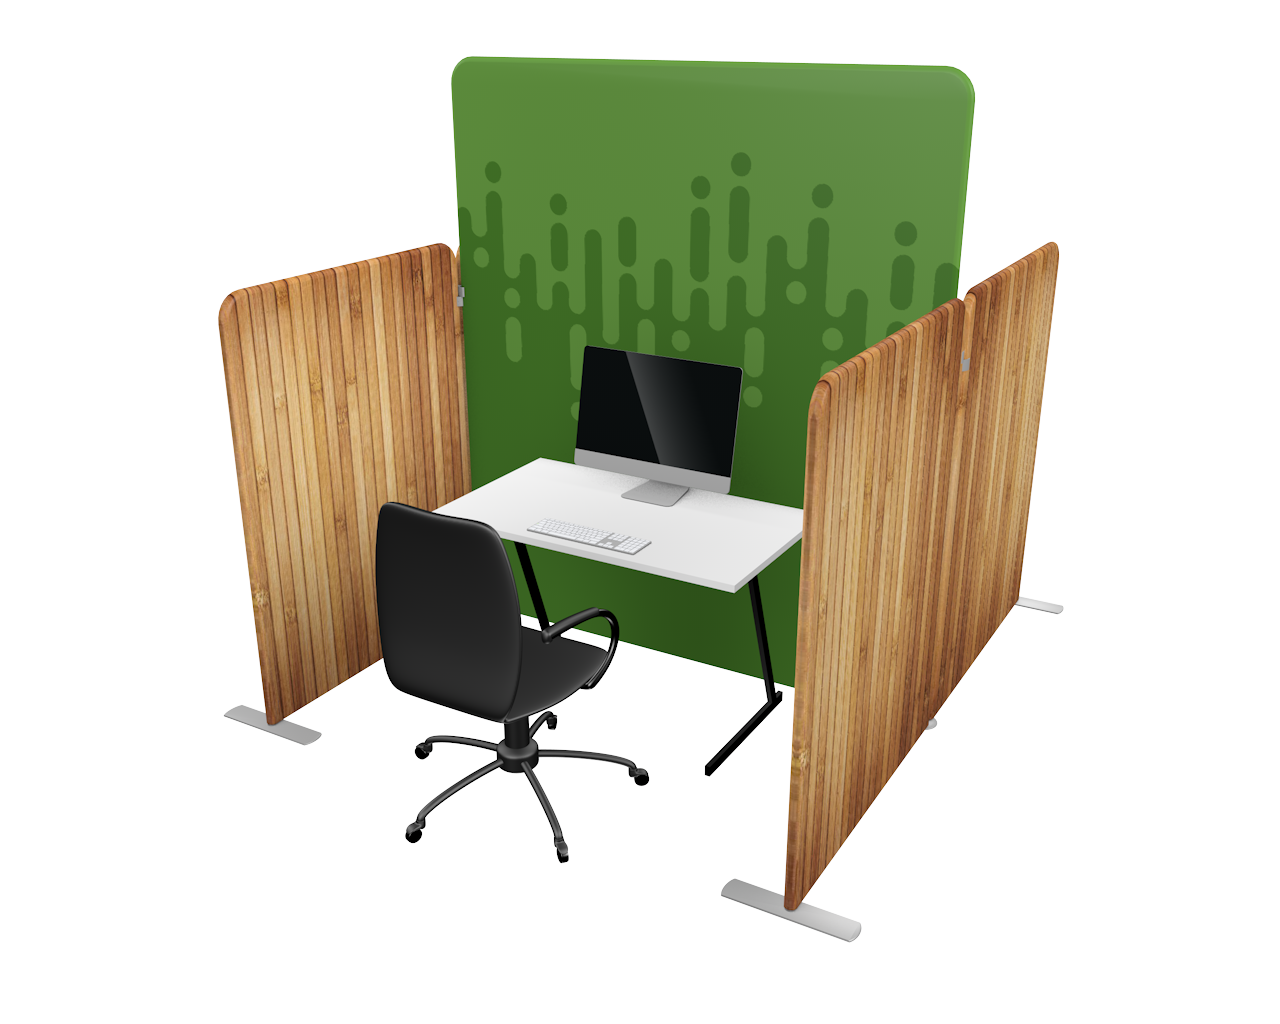 workplace divider kit_3.png